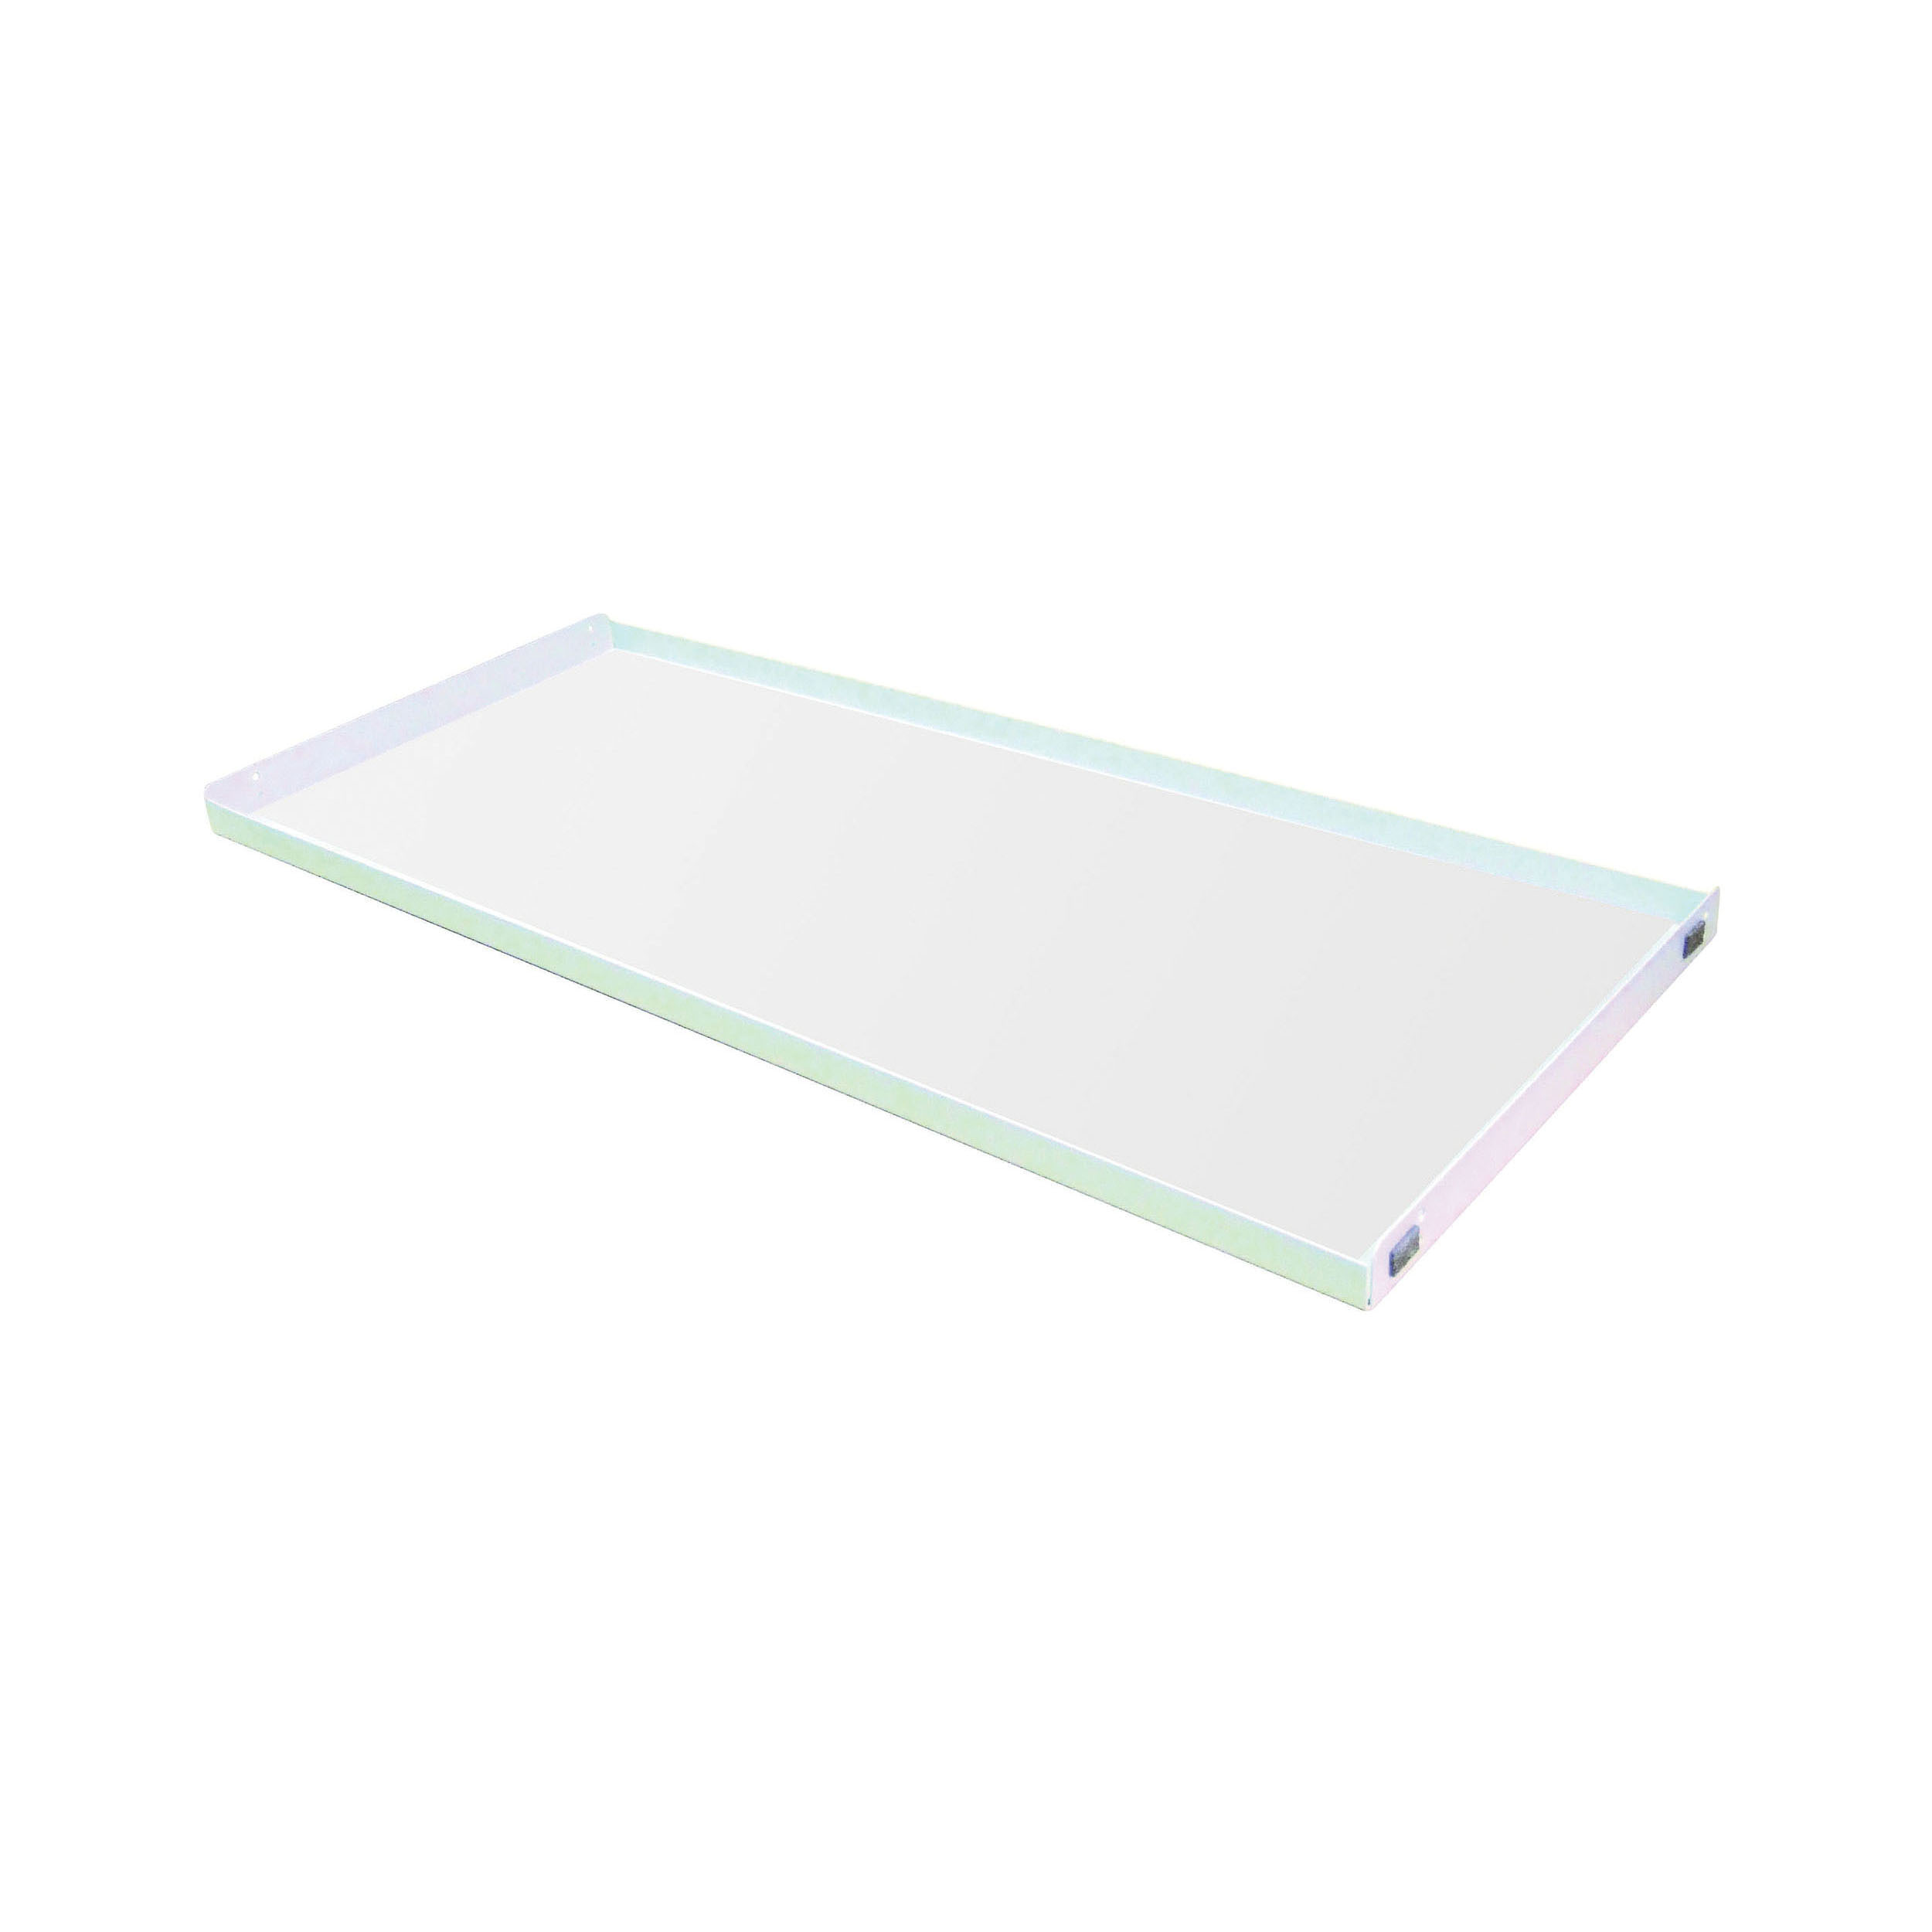 Justrite® 22630 Shelf, For Use With 30 gal 30 min/90 min Safety Cabinet, Light Gray